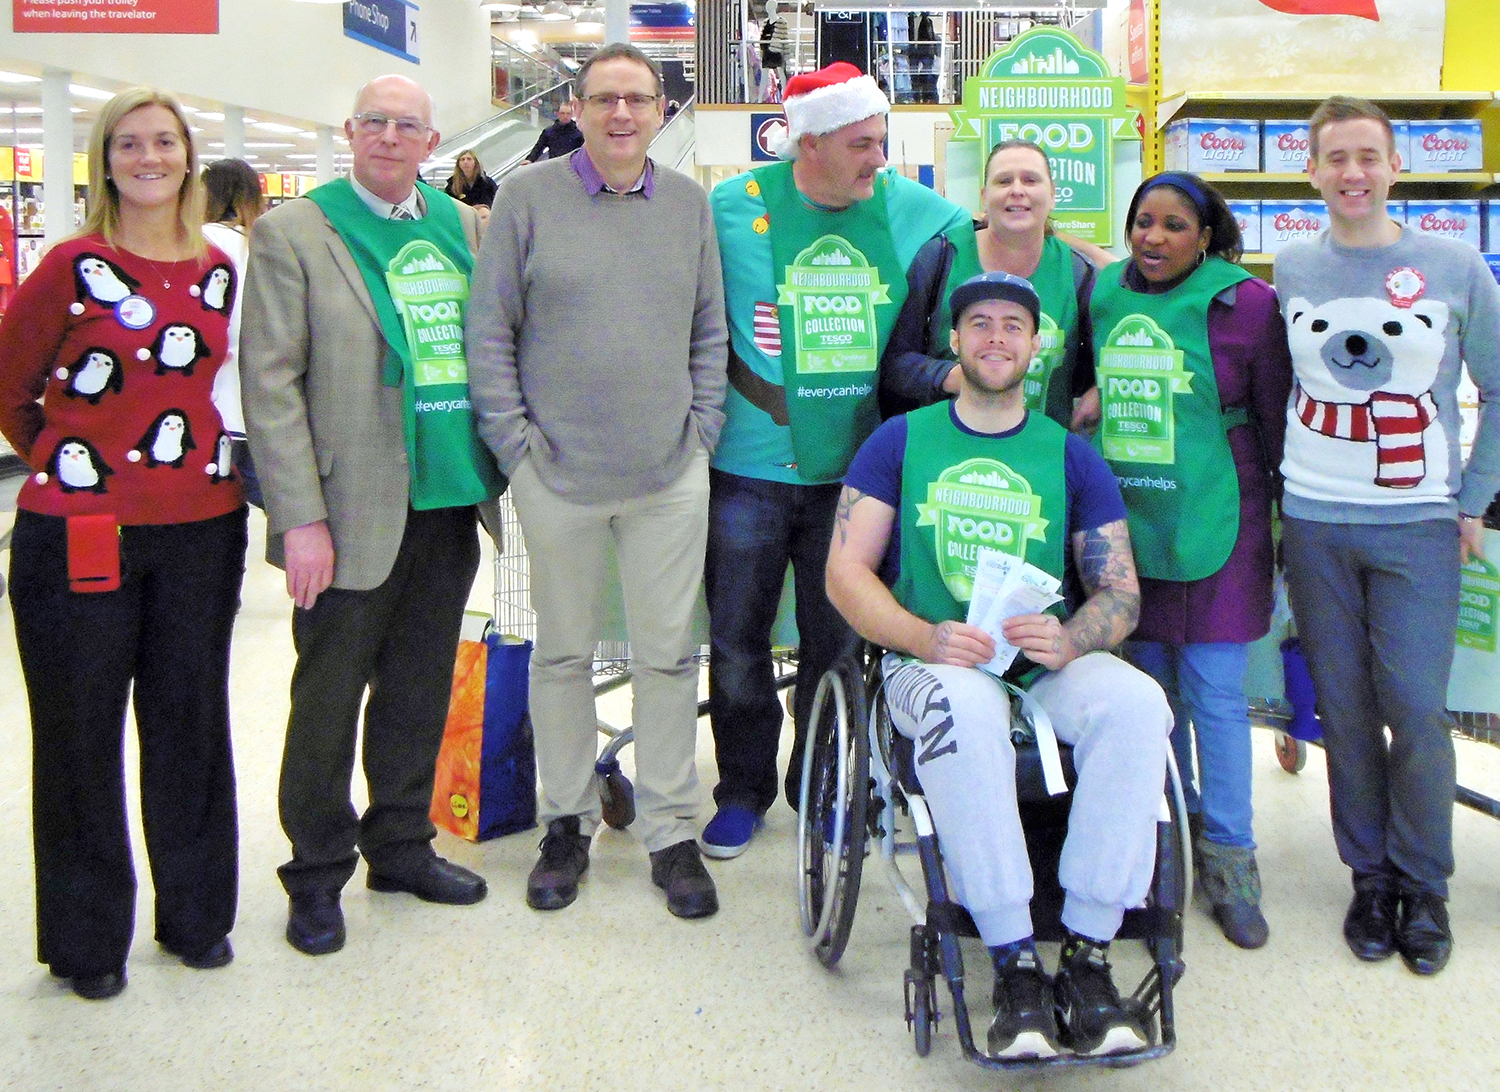 MP at Foodbank Collection